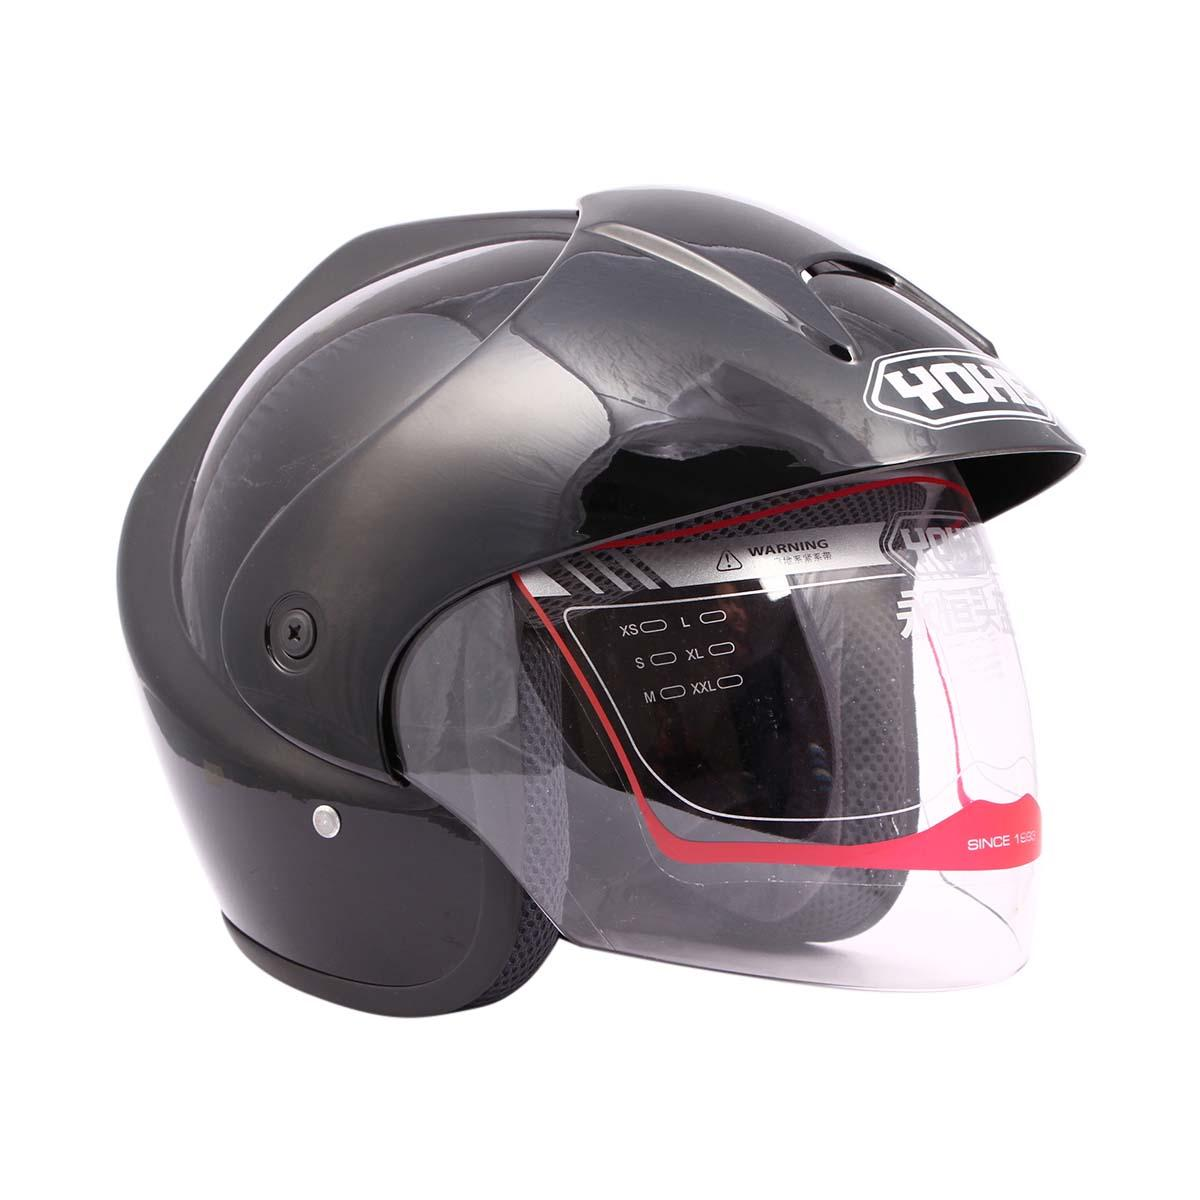 932e725e Helmet Price In Bangladesh - Buy Bike Helmet From Daraz.com.bd